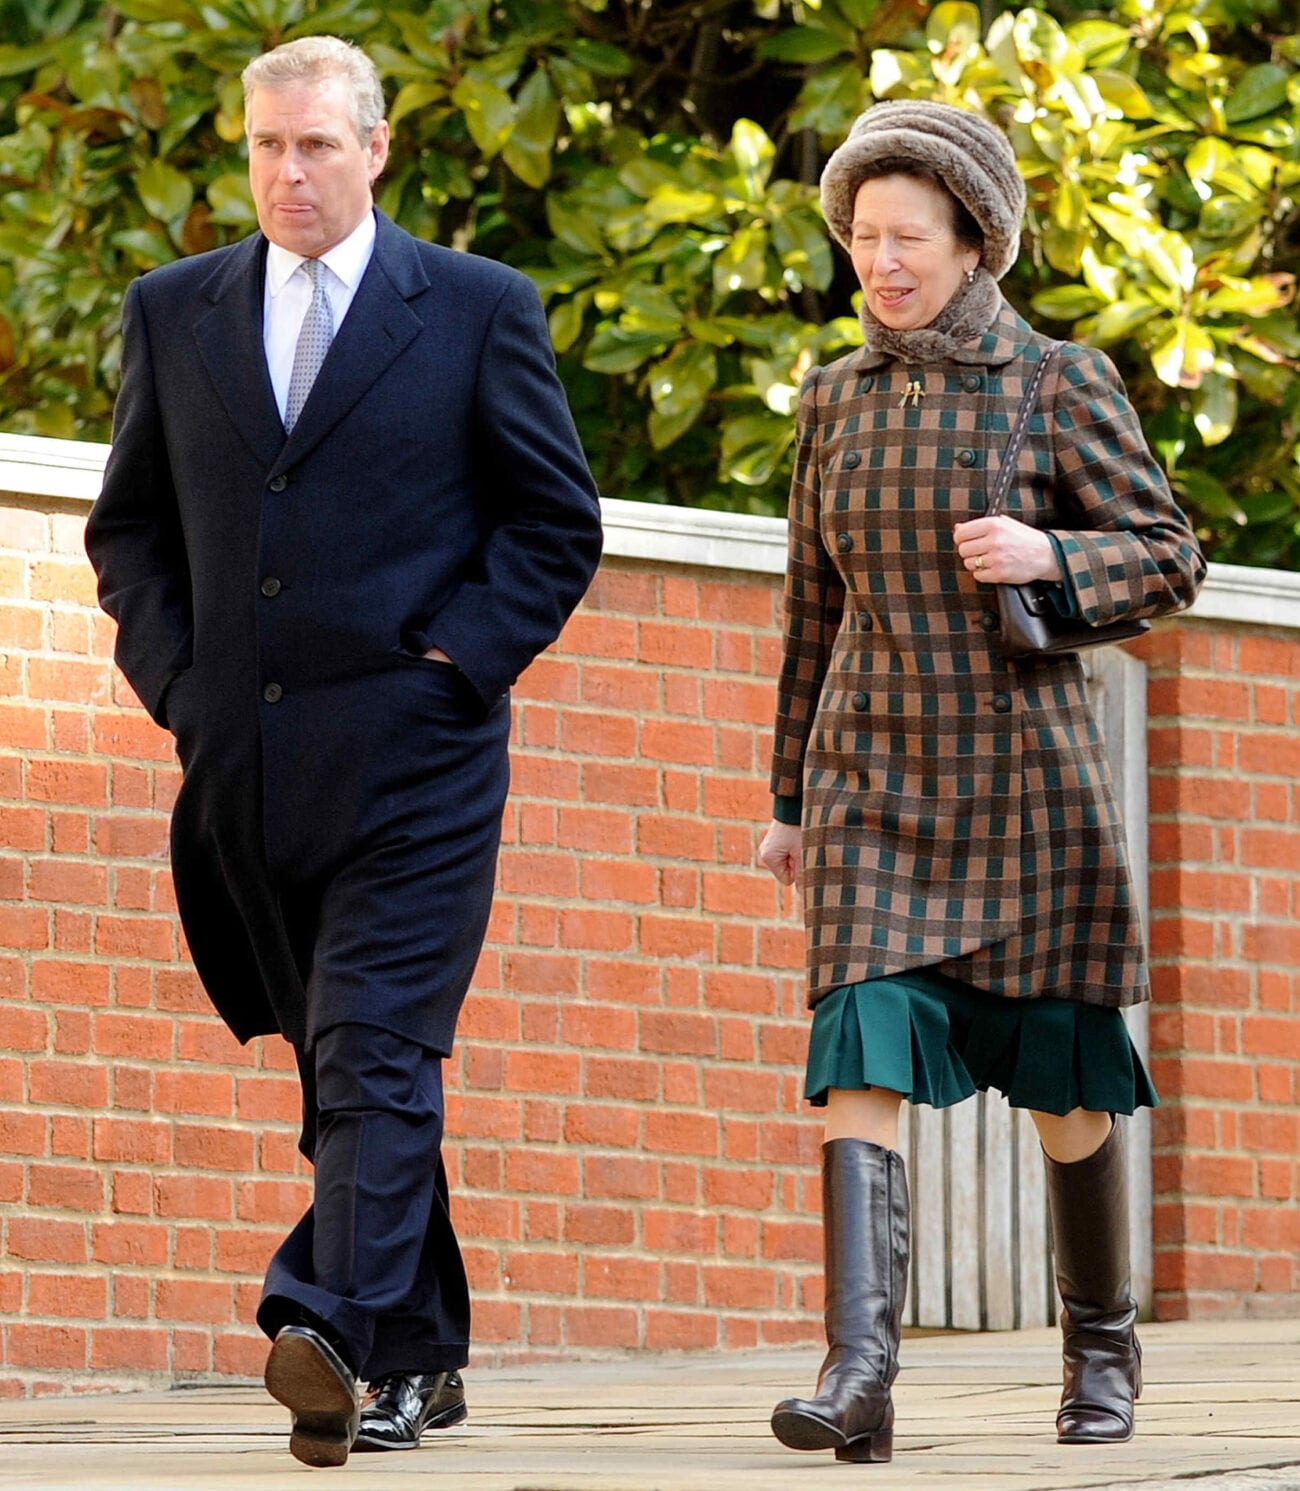 Princess Anne has taken up more royal duties in the wake of Prince Andrew's scandal. Find out how the royal family is weathering through these tough times.